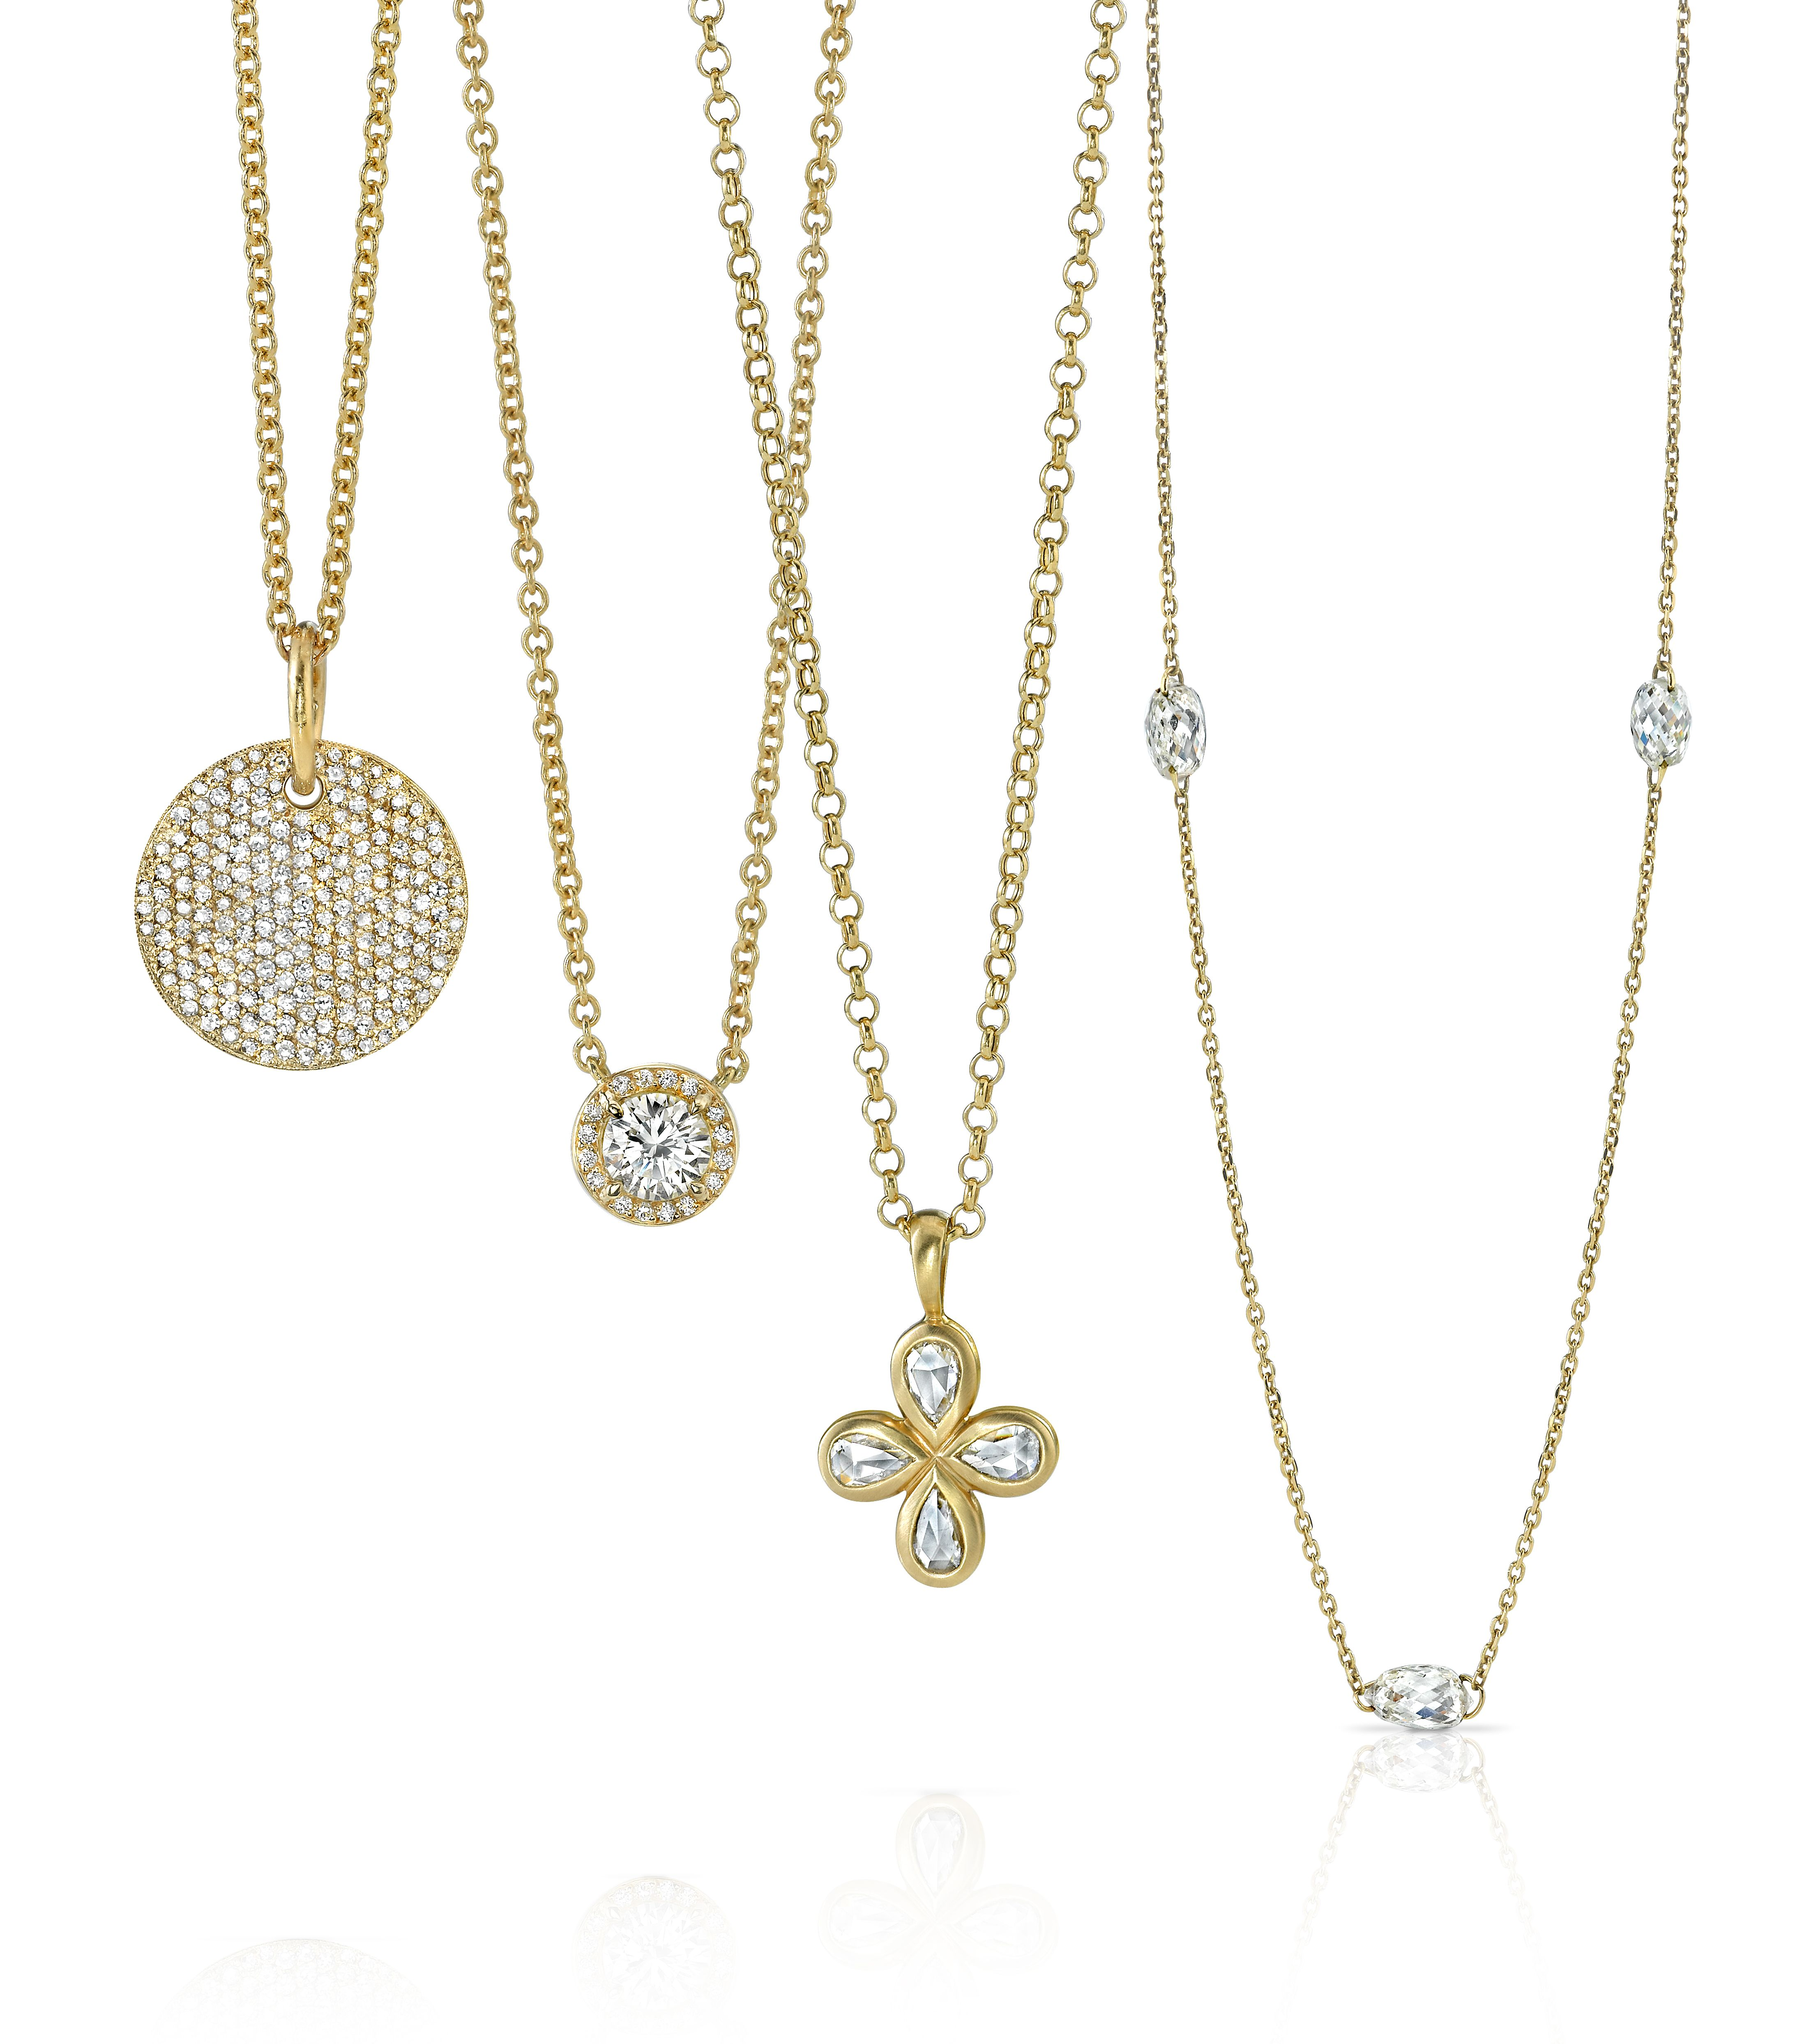 These Single Stone necklaces are perfect for layering! Dress them up or dress them down! www.singlestone.com